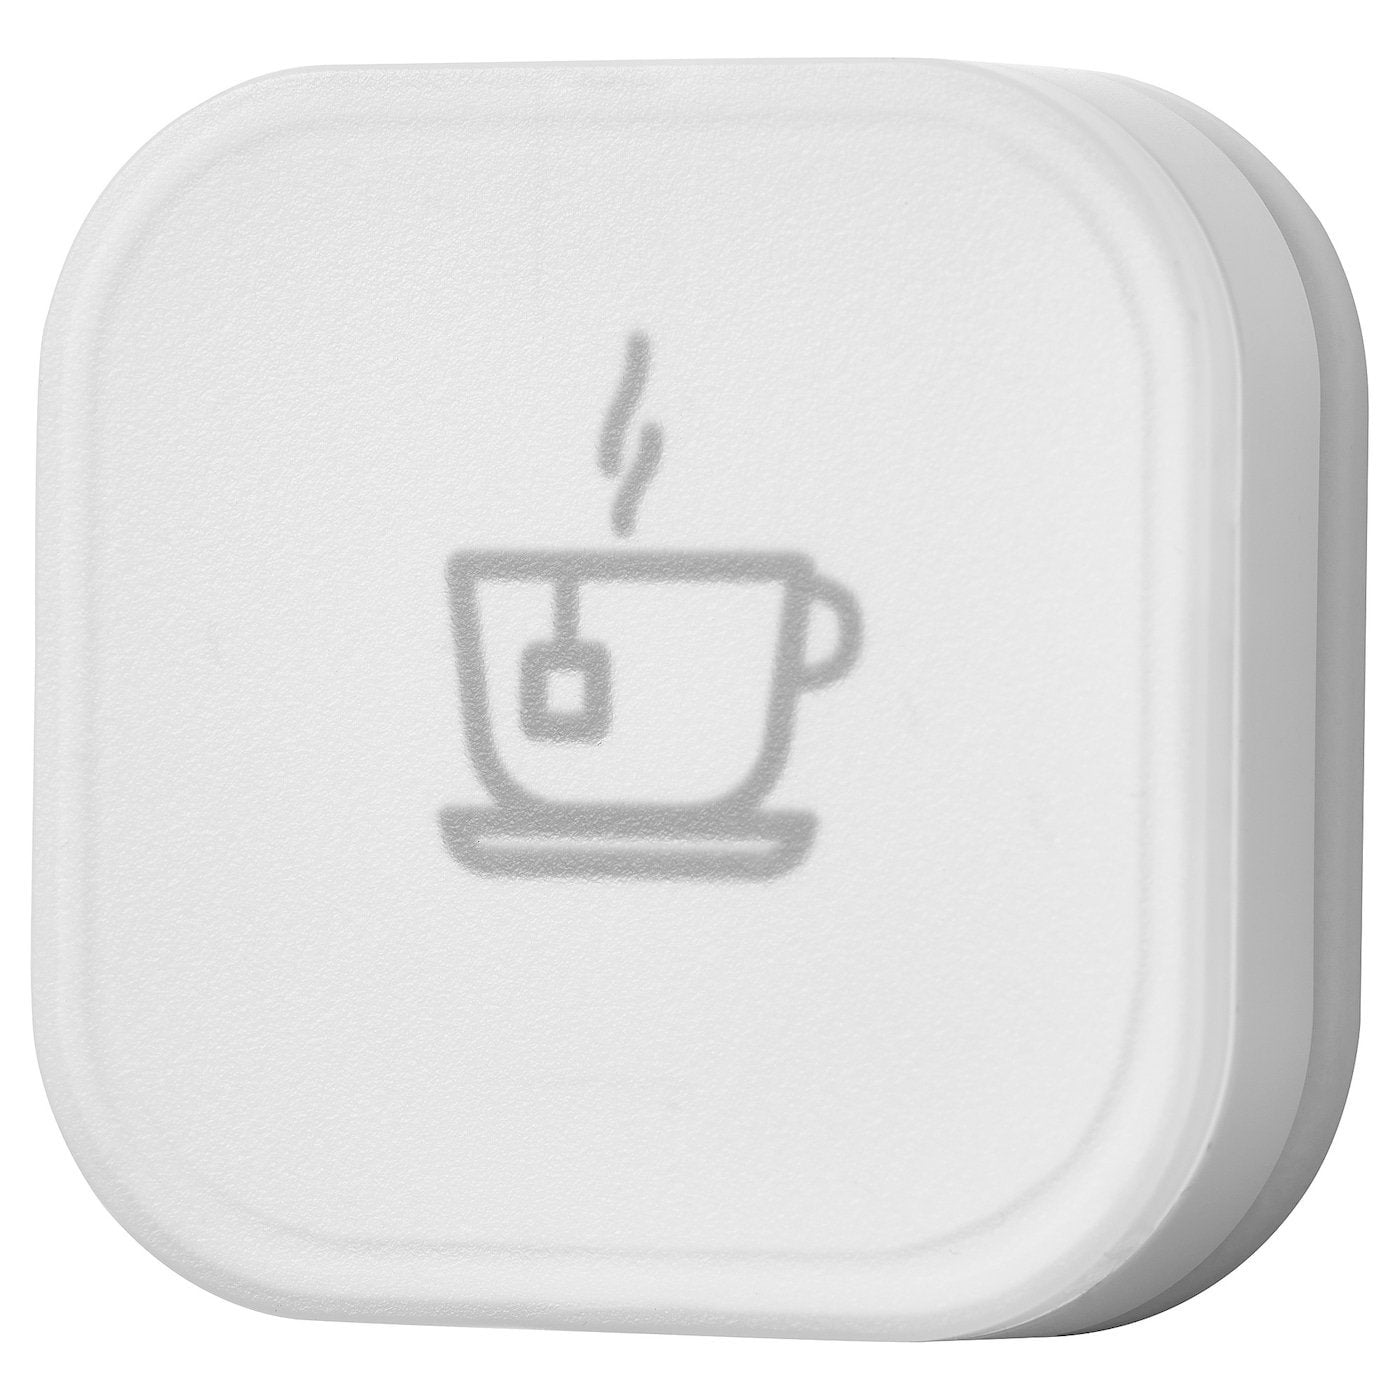 PSA Ikea shortcut button now on the Ikea website in